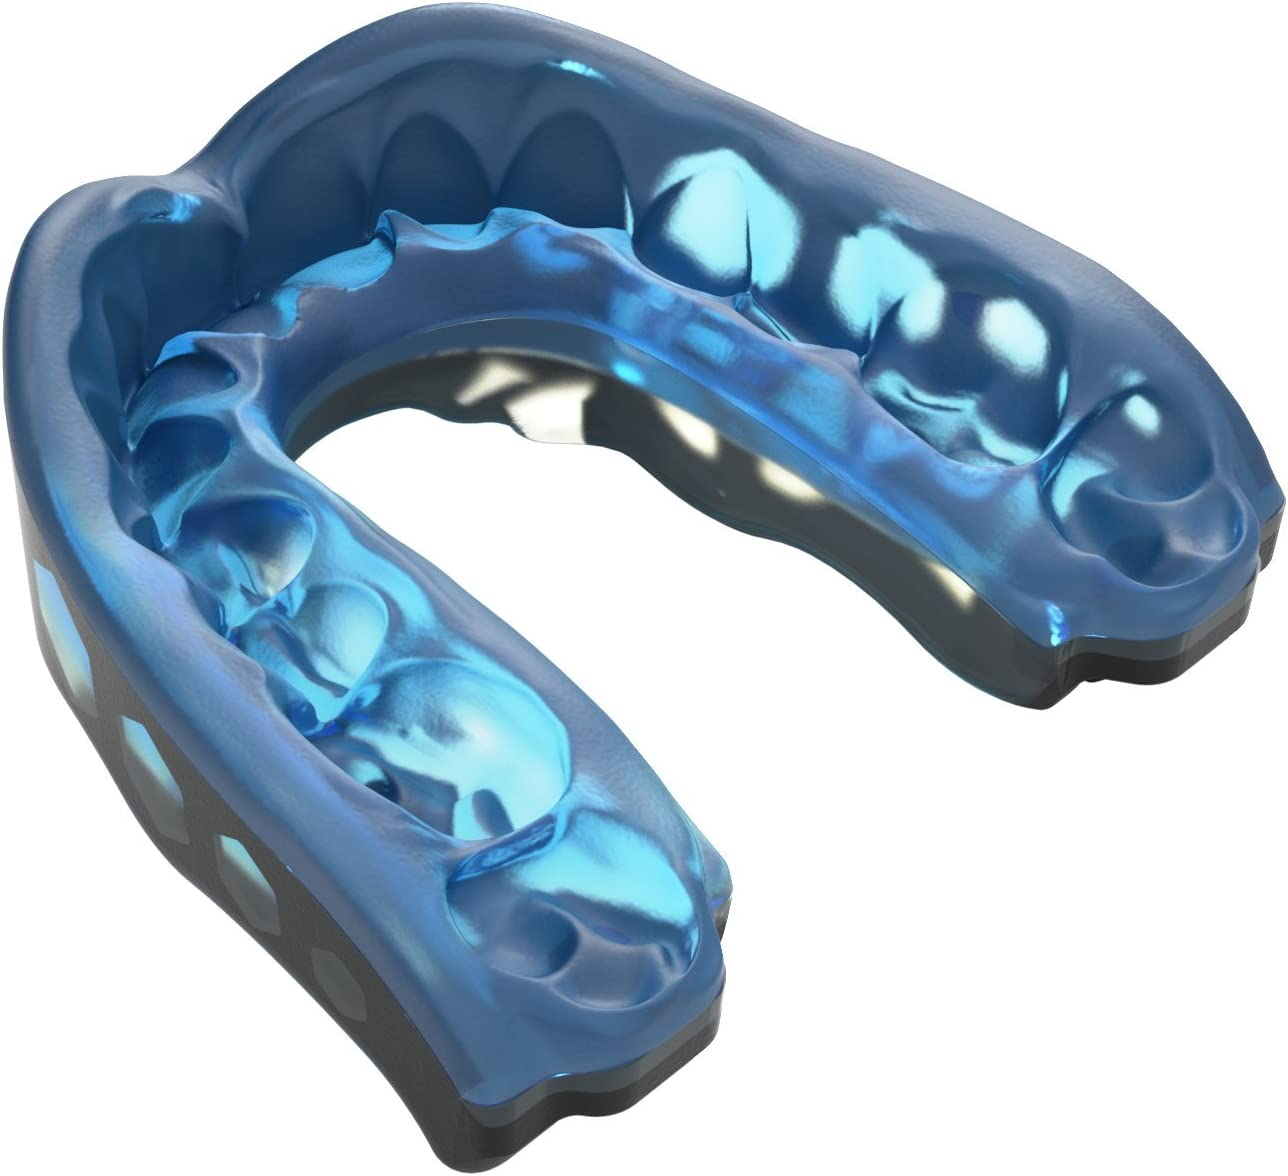 Shock Doctor Gel Max Mouth Guard, Sports Mouthguard for Football, Lacrosse, Hockey, Basketball, Flavored mouth guard, Youth & Adult : Sports & Outdoors